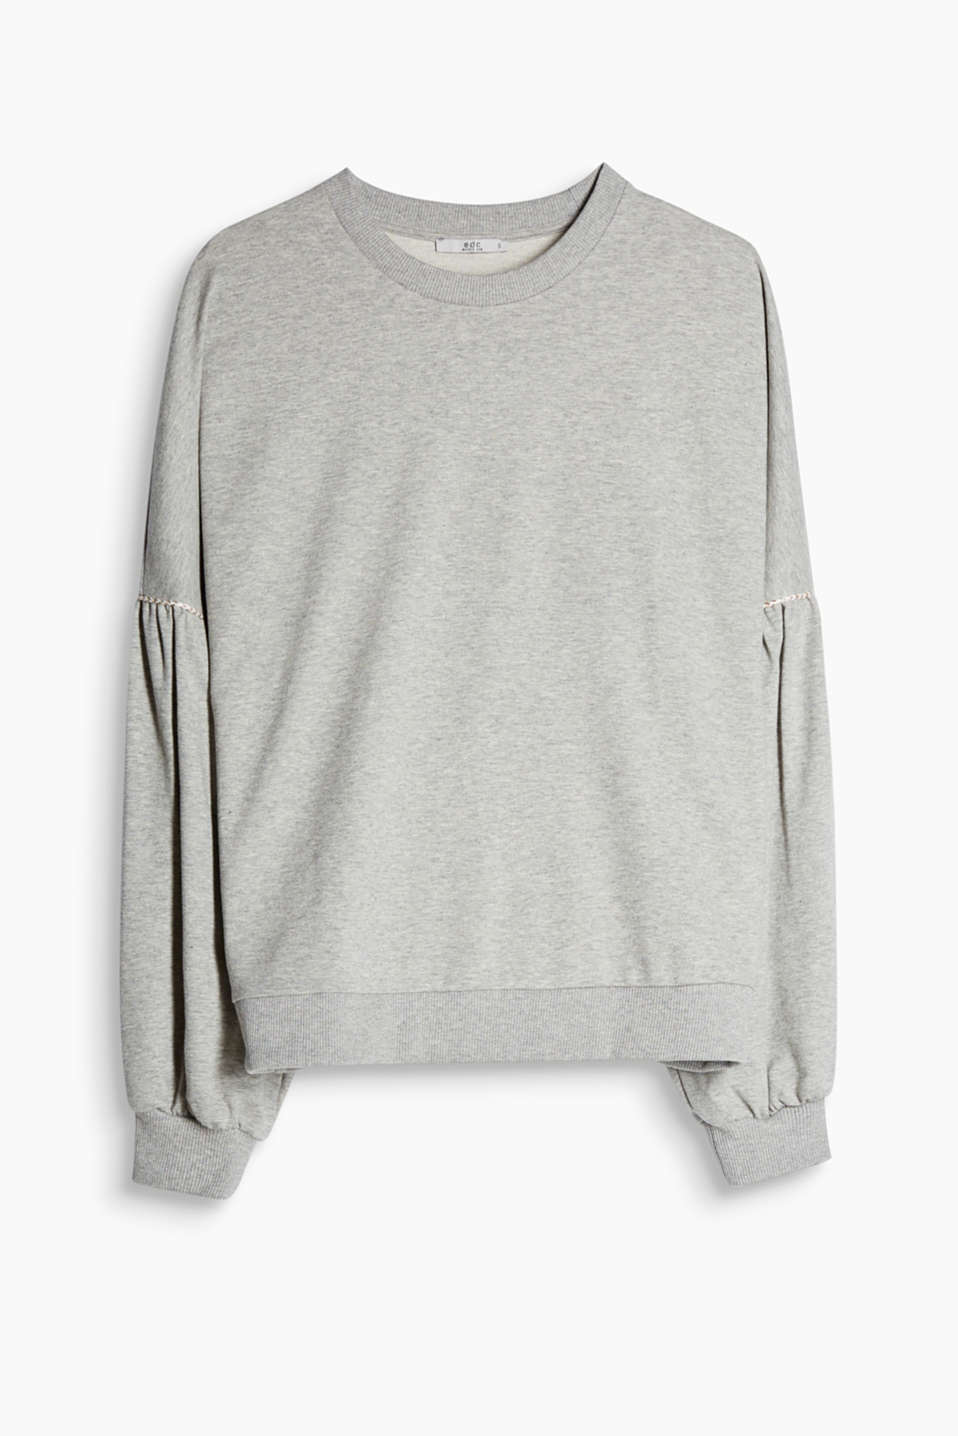 Sweatshirt with dropped shoulders and balloon sleeves made of soft blended cotton